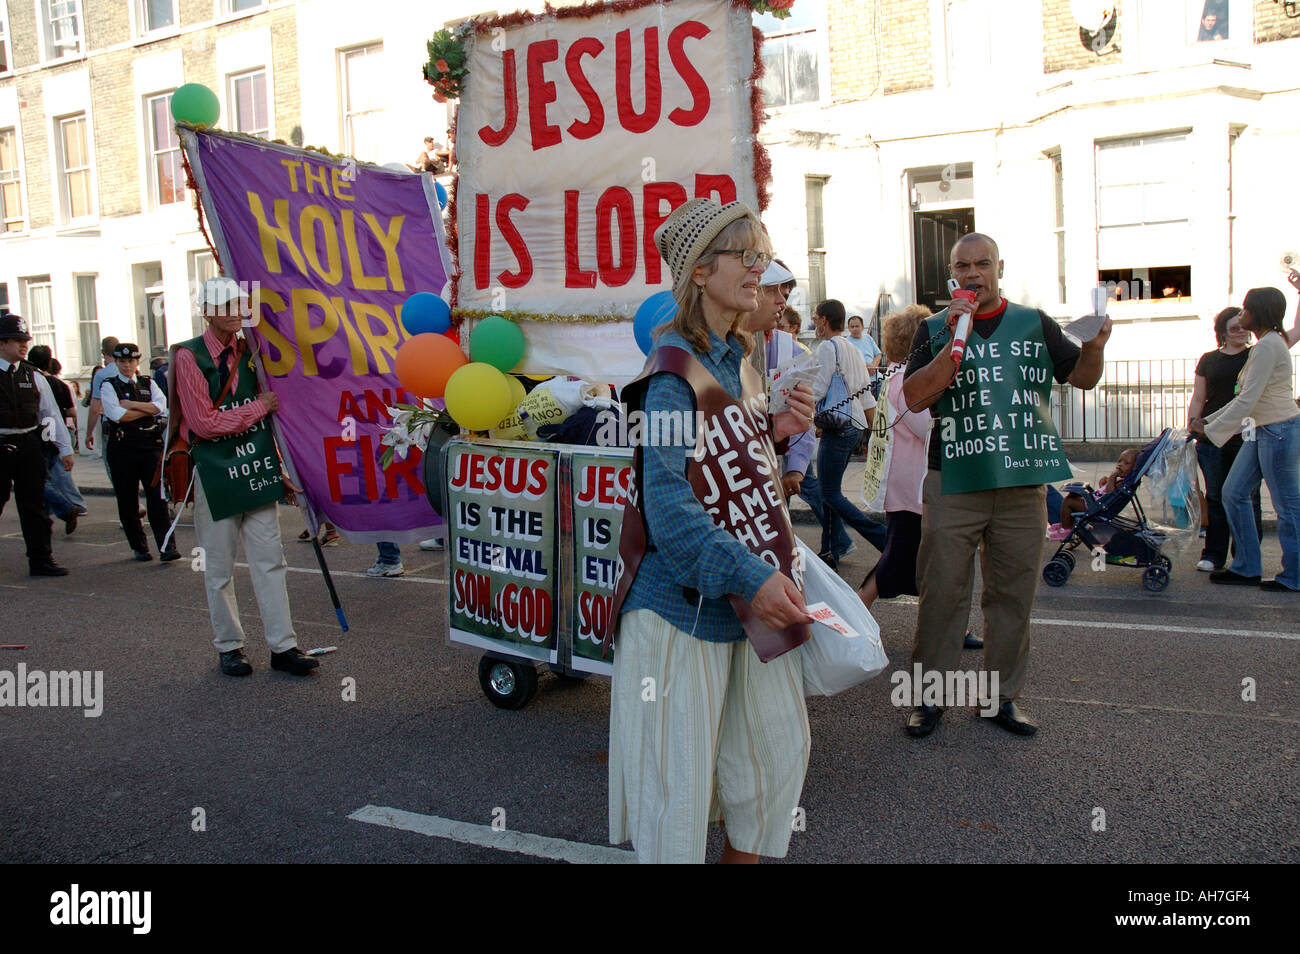 Group of religious cult advocates preaching and spreading their word through street of London. - Stock Image